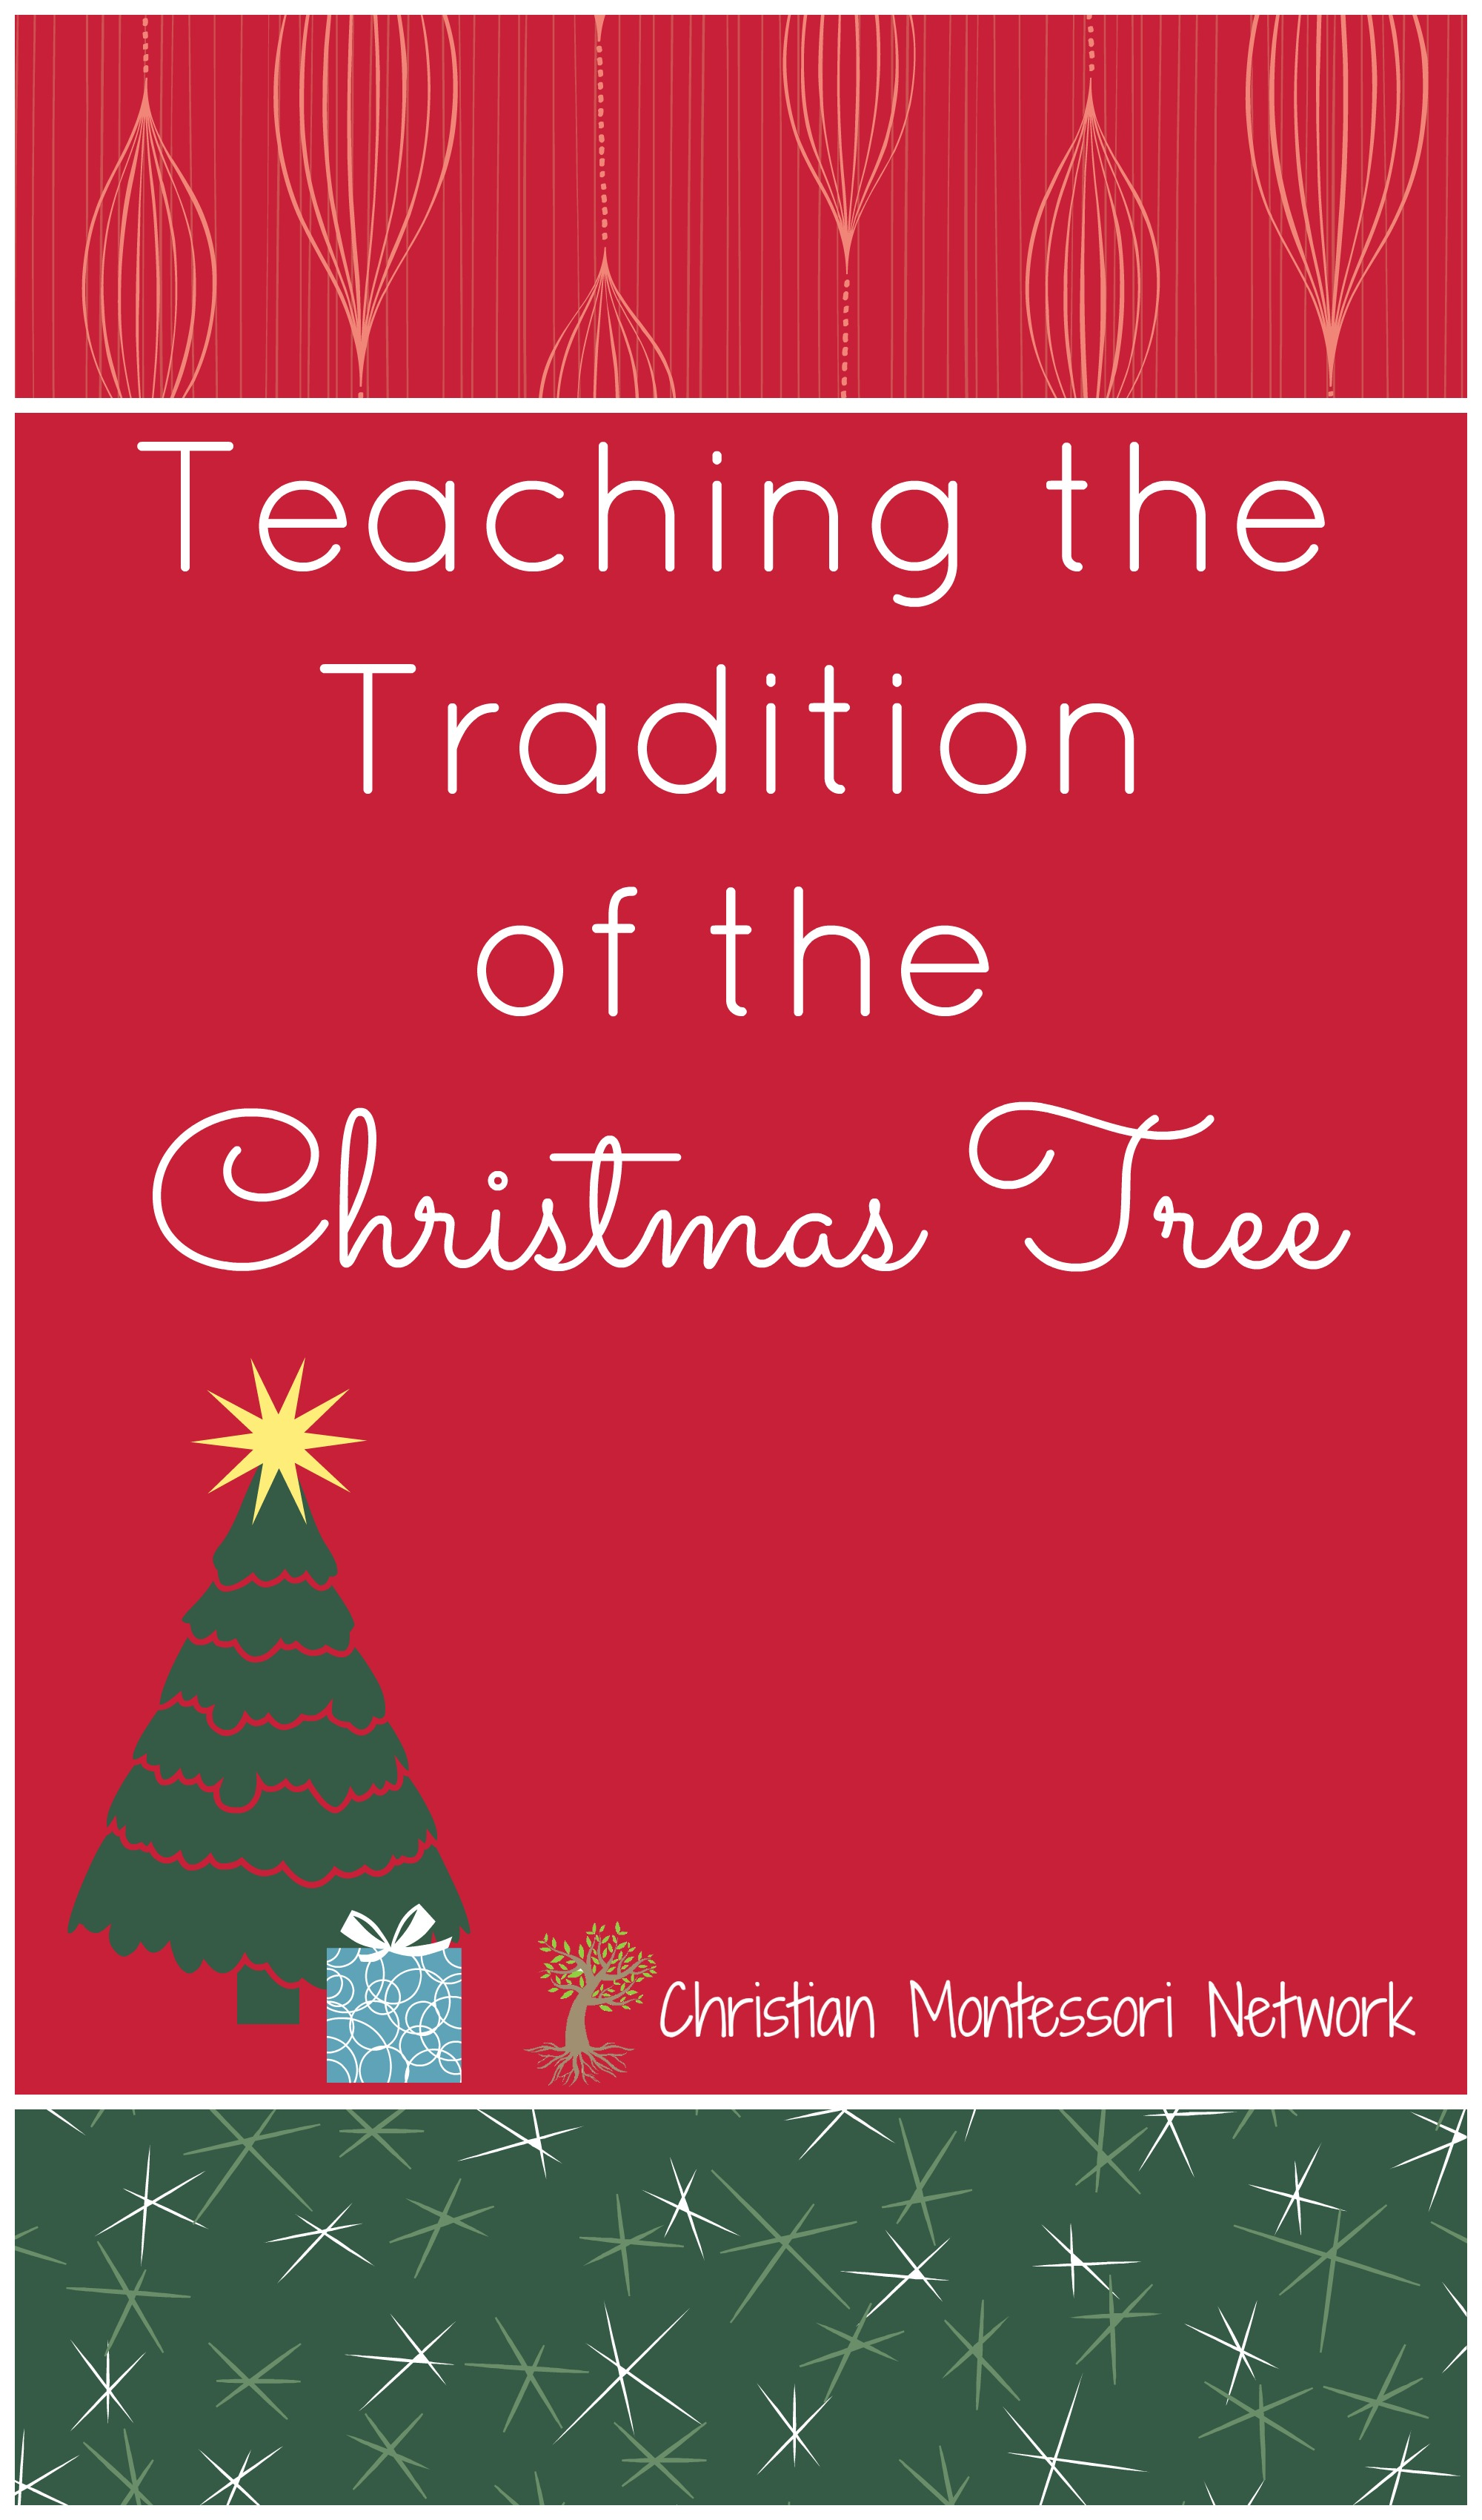 Do you love decorating your Christmas tree? This year use it to help teach children